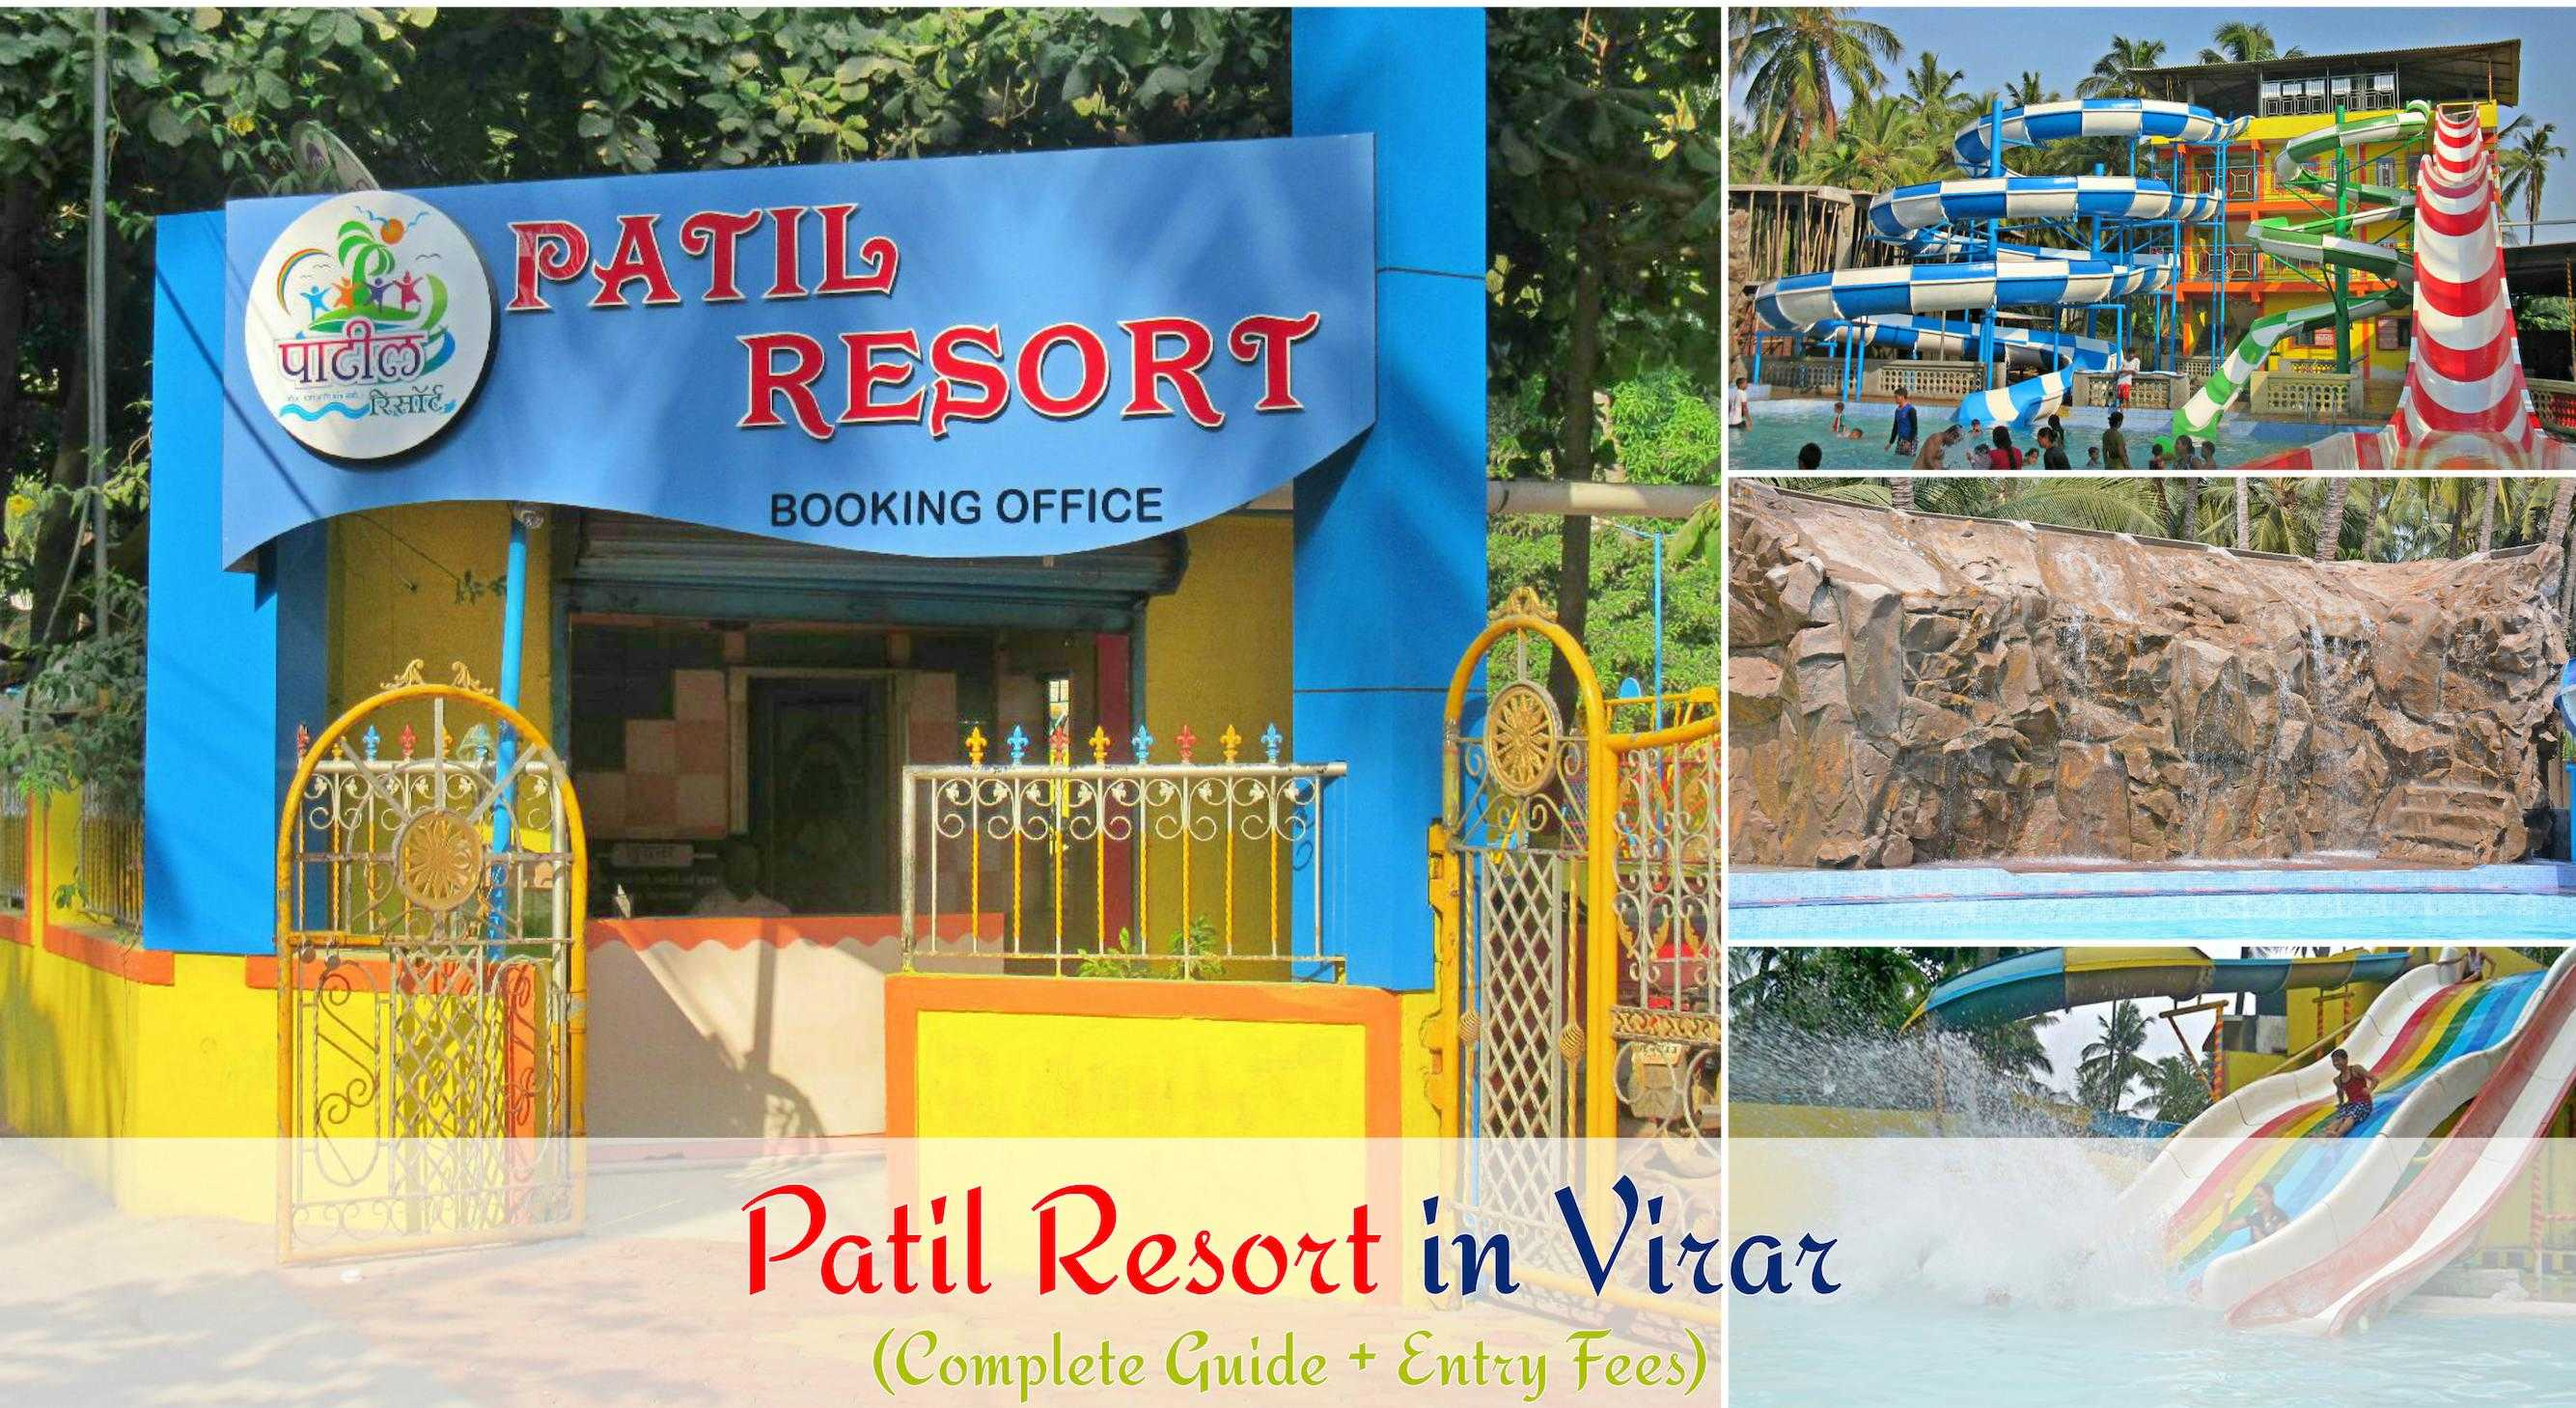 patil-resort-virar.jpg